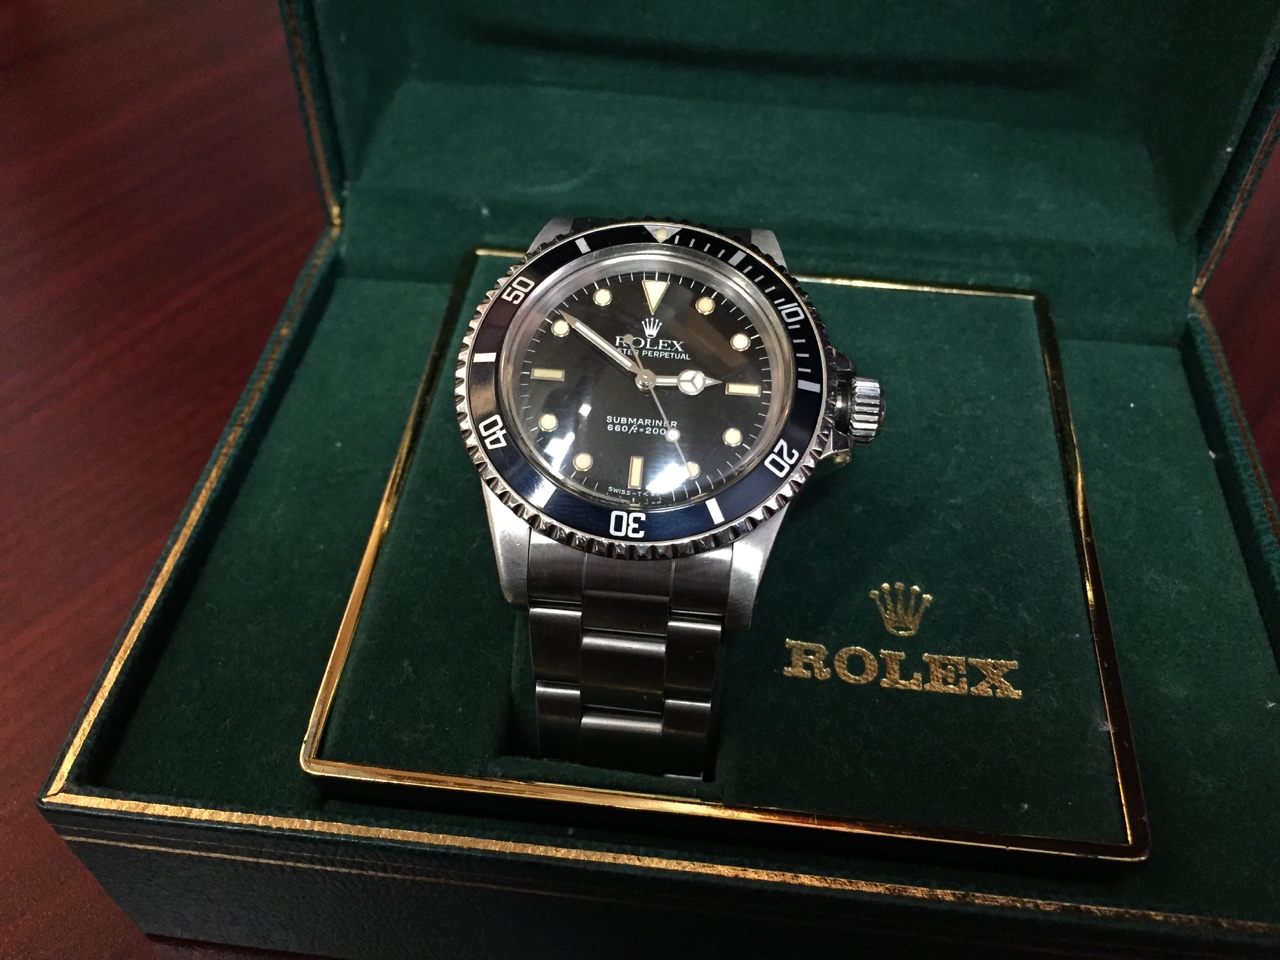 Rolex Submariner with Box & Papers - $5,000